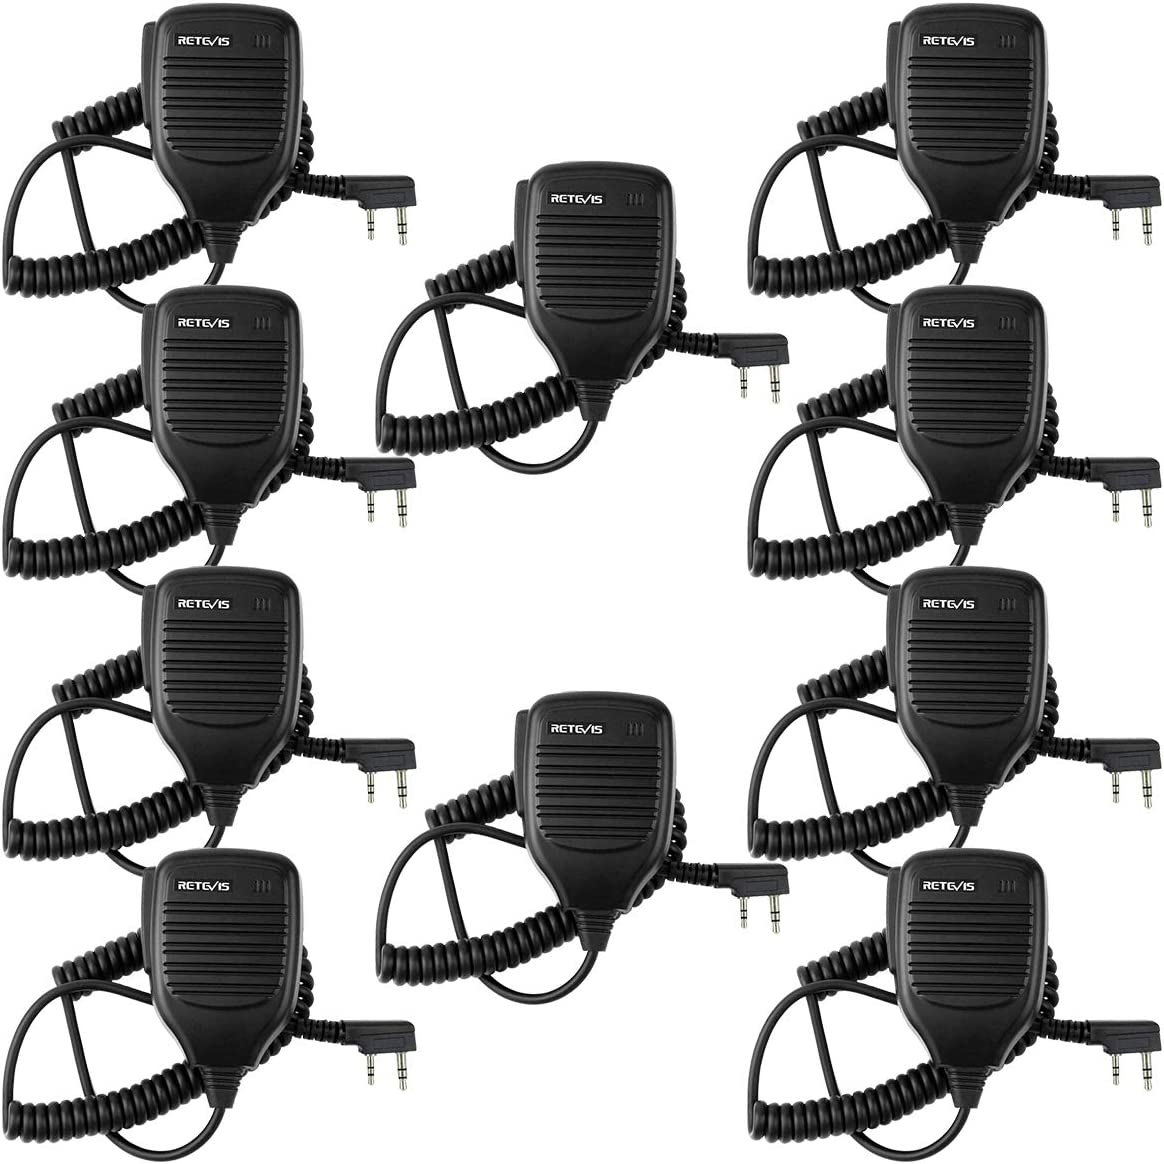 10X Retevis IP54 Speaker Microphone 2 PIN for H777 RT21 RT27 Kenwood 2-Way Radio